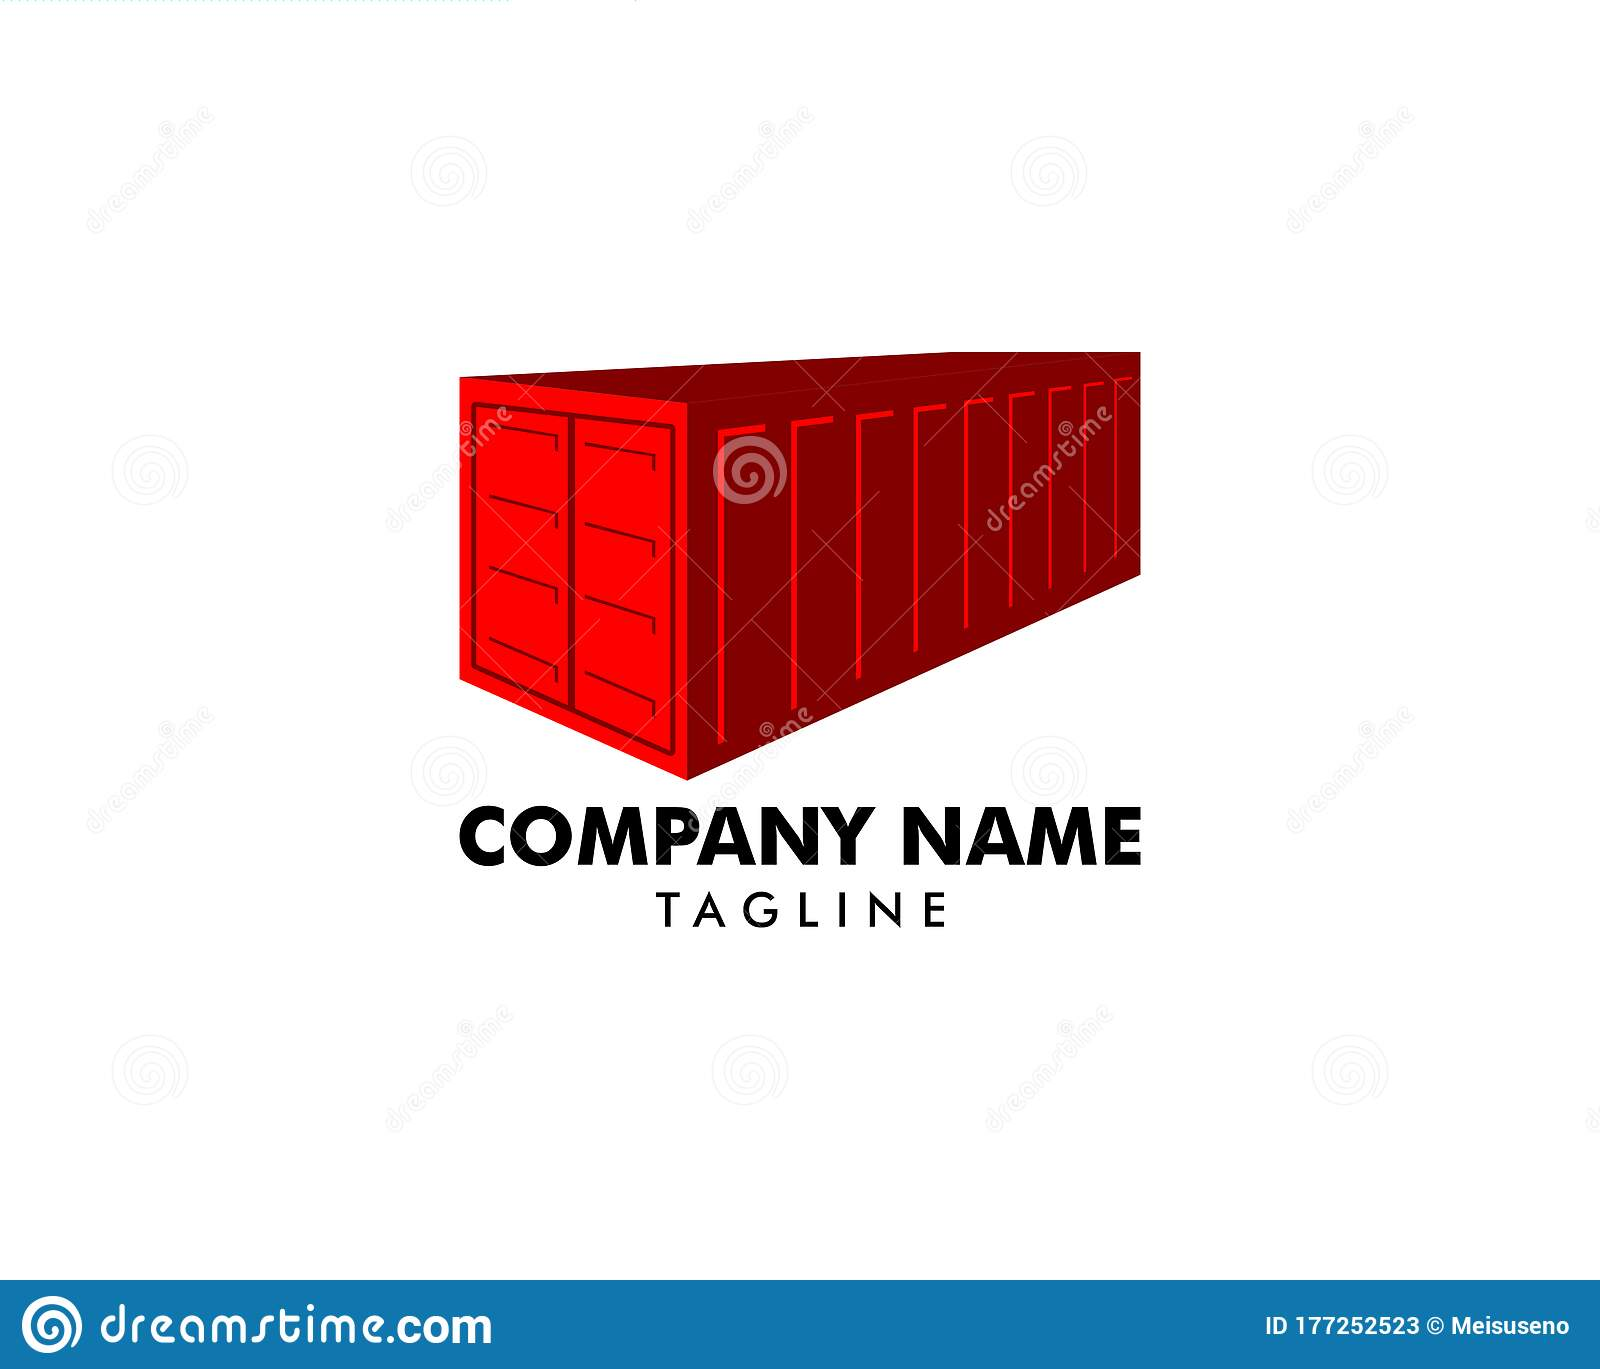 Shipping Container Box Design Logo Template Vector Illustration Stock Vector Illustration Of Concept Design 177252523